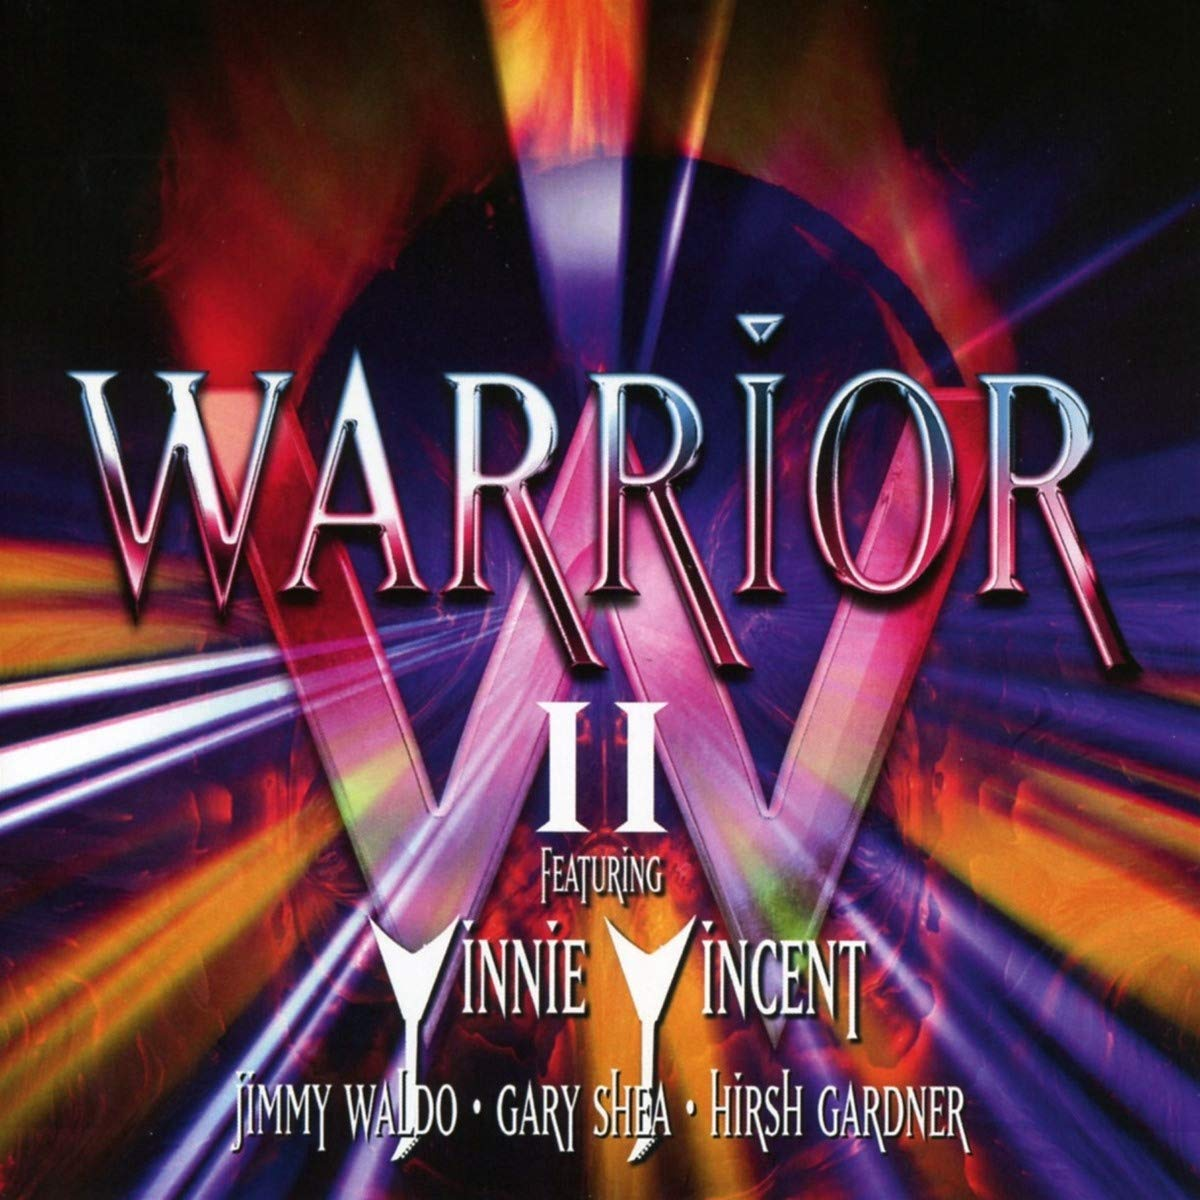 CD : WARRIOR FEATURING VINNIE VINCENT - Warrior Ii (Expanded Version, United Kingdom - Import)